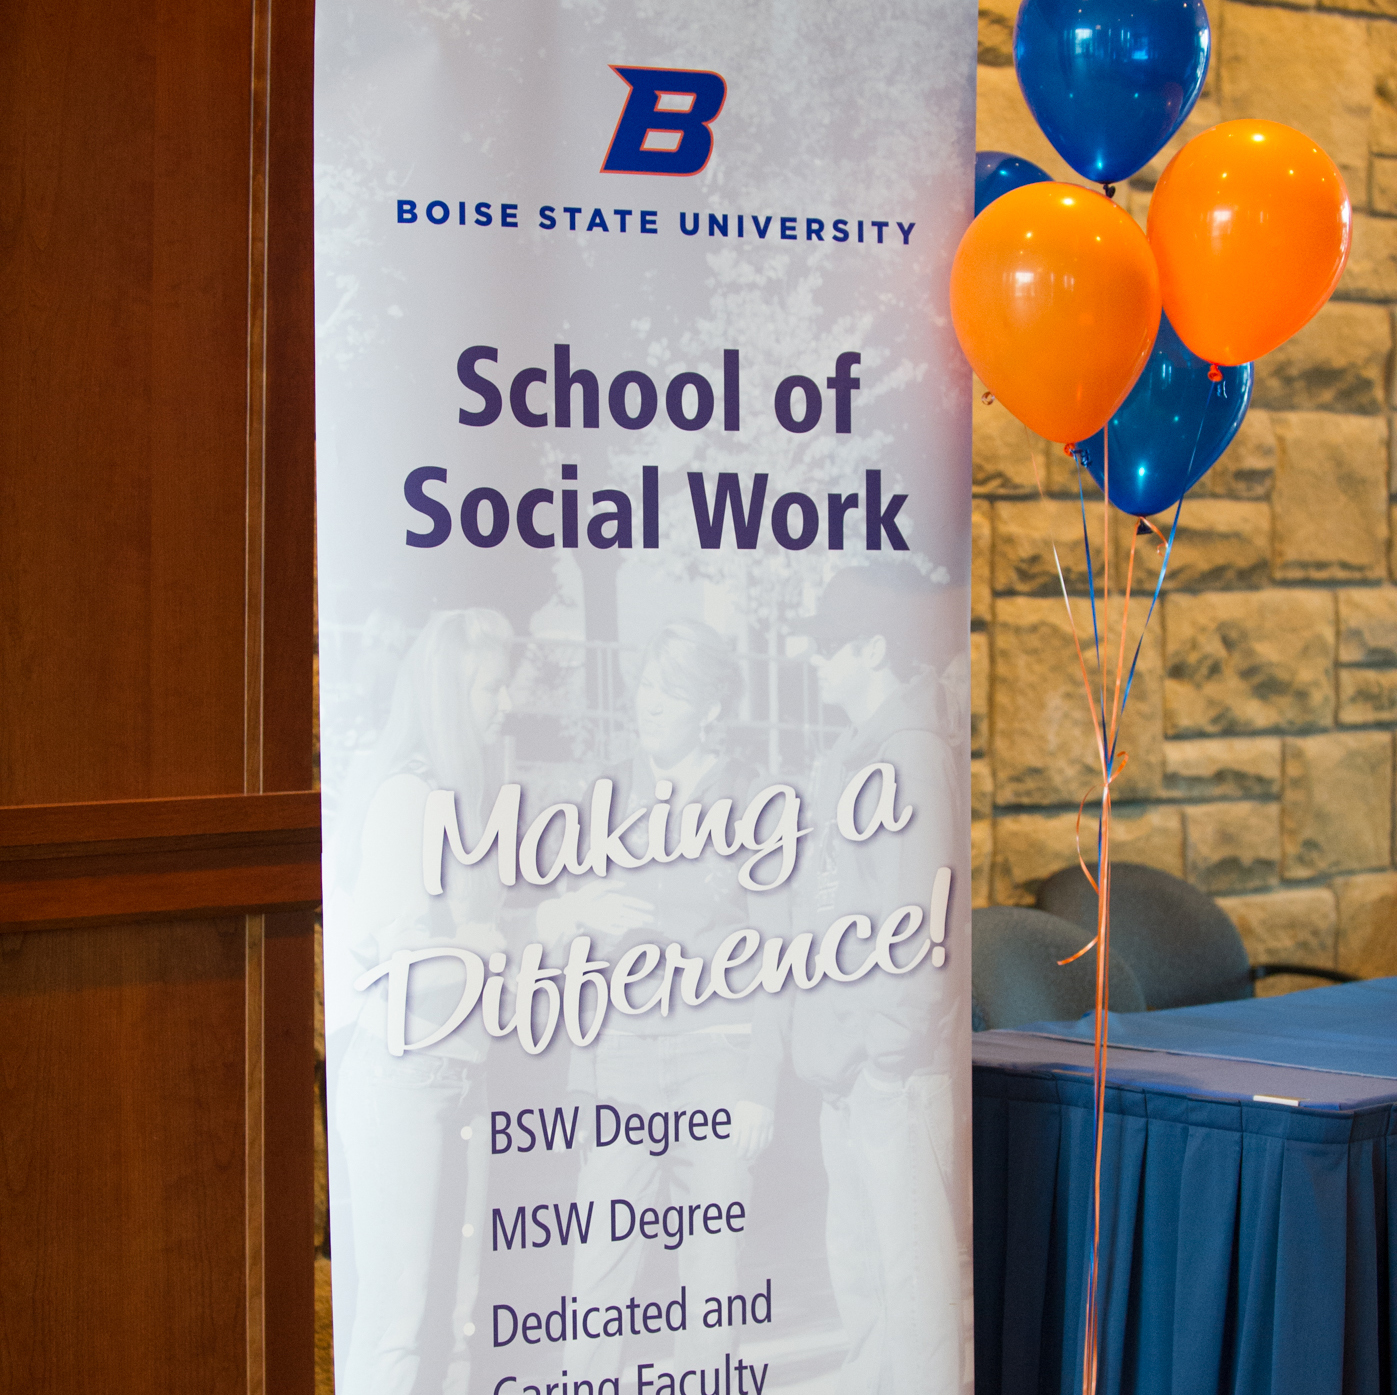 School of Social Work, National Social Work Month Celebration, Allison Corona photo.